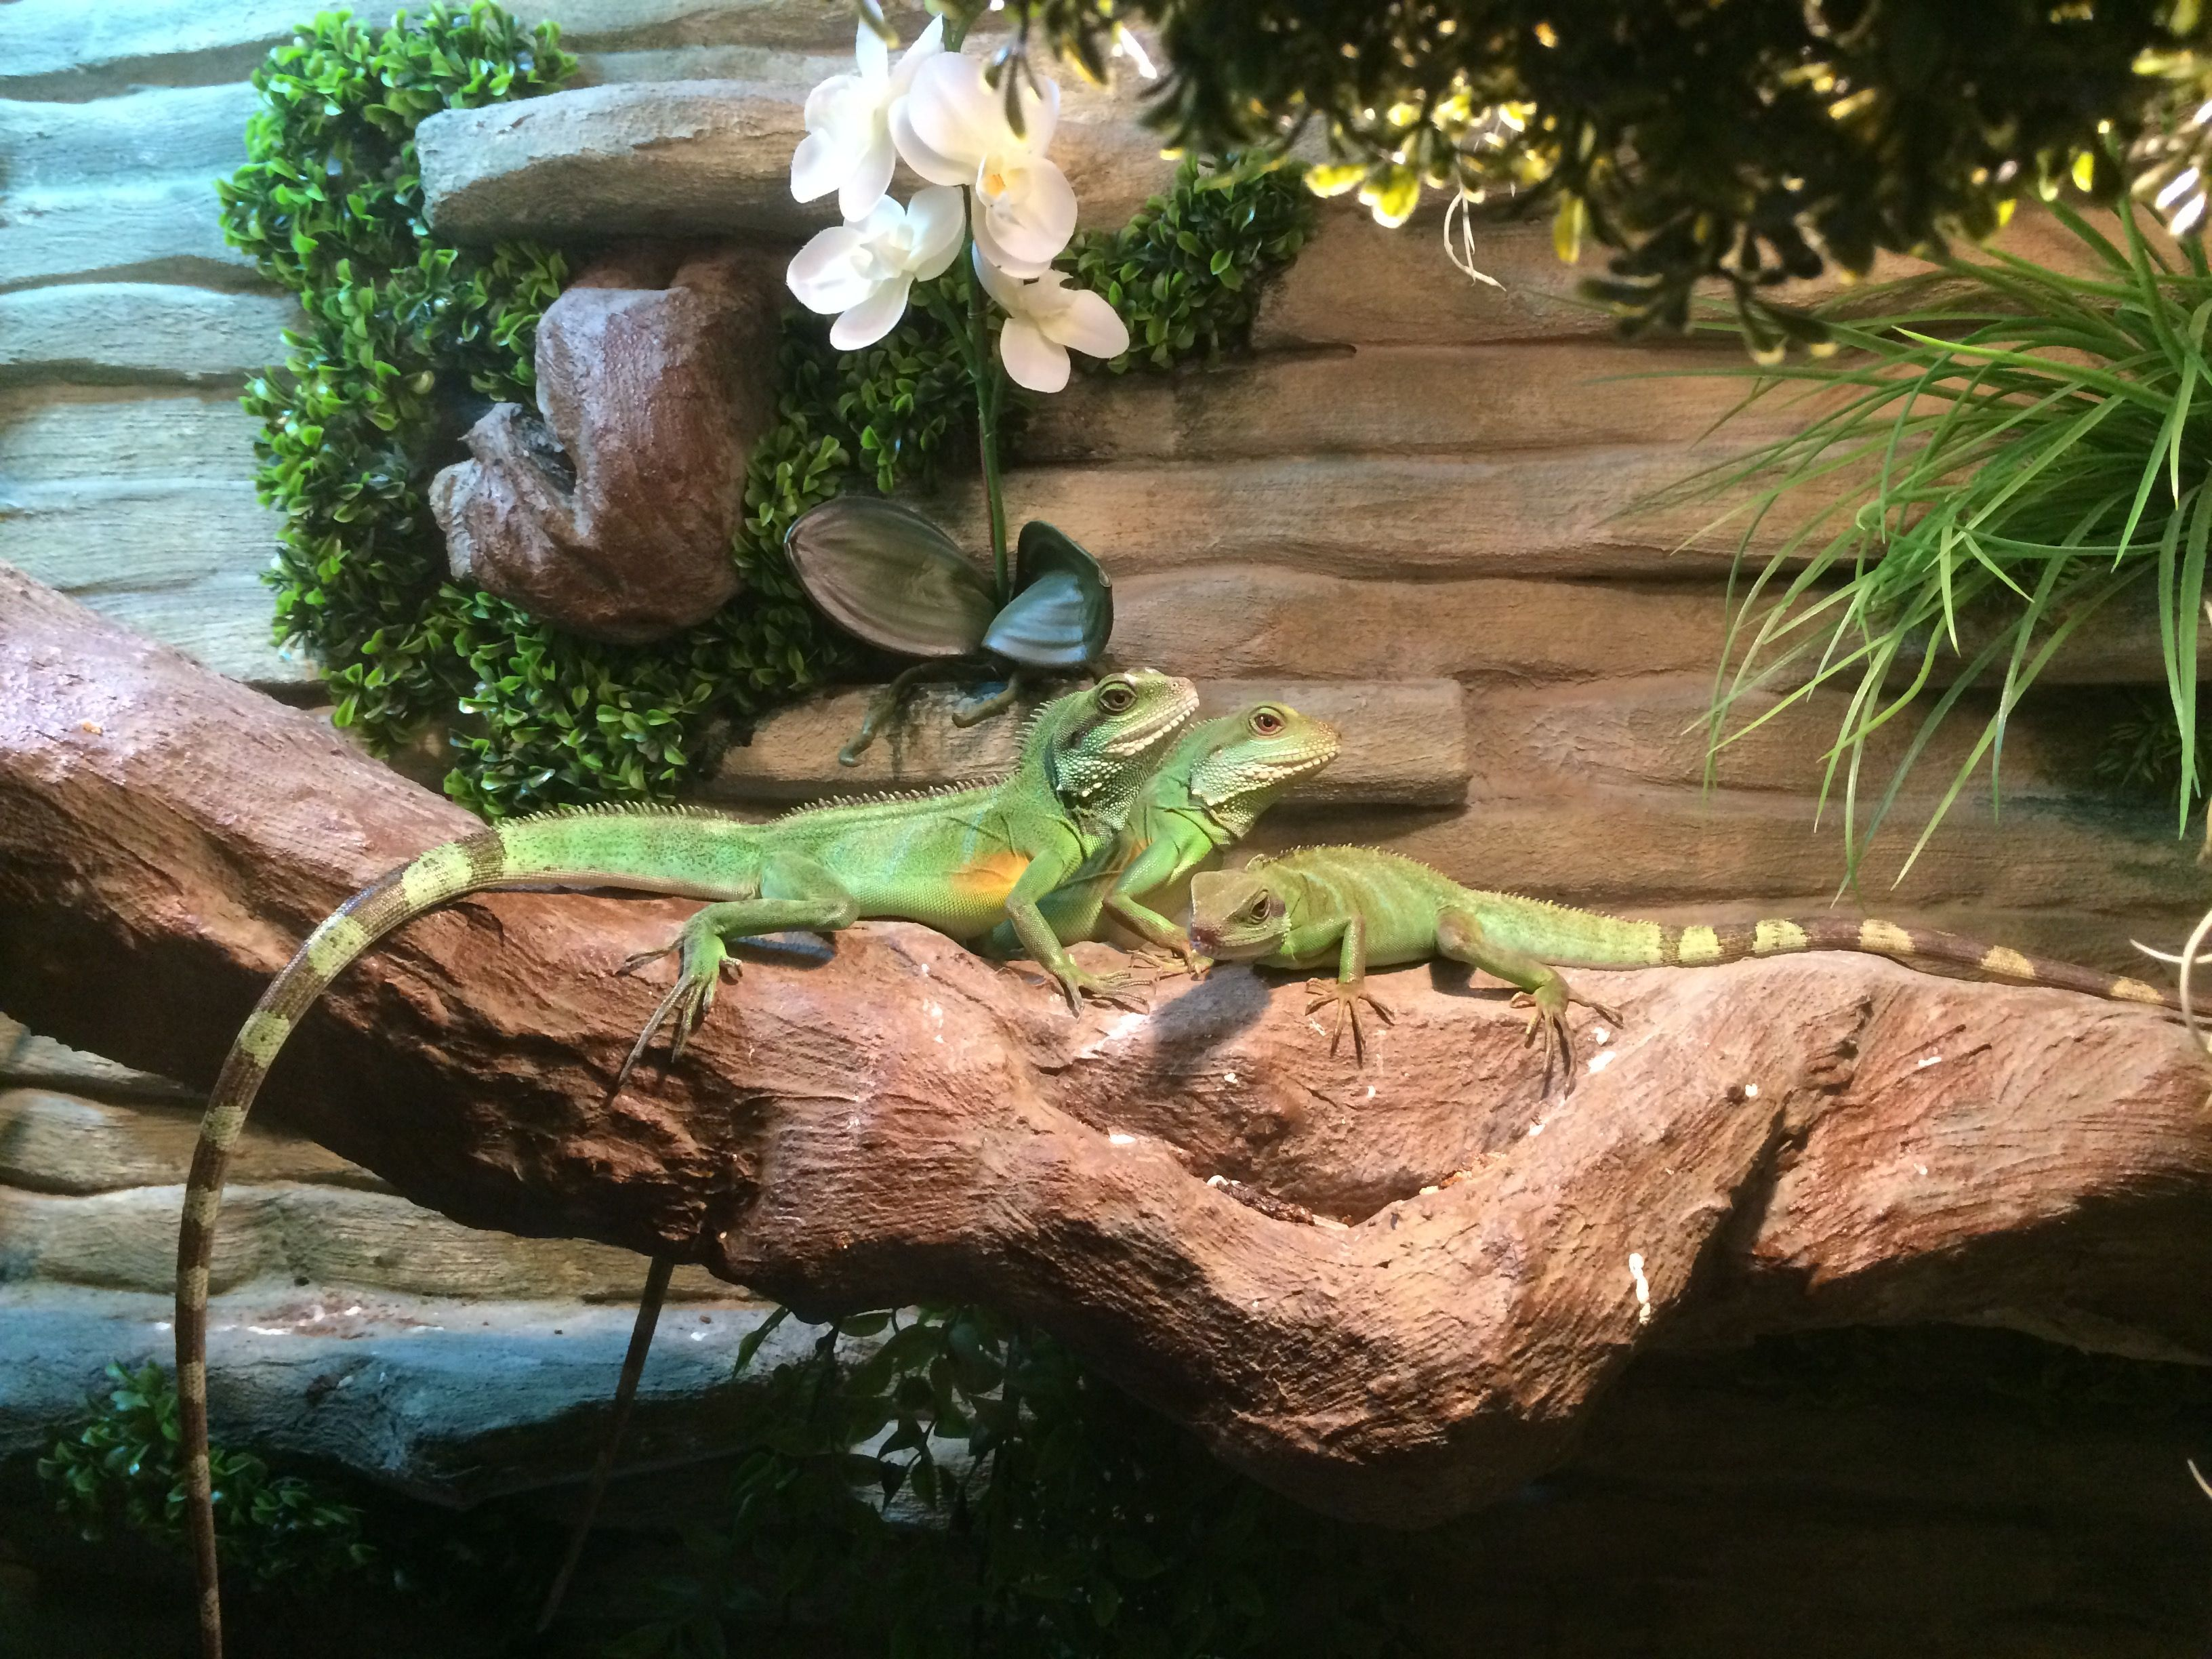 20 Beautiful Chinese Water Dragon Tanks Pictures And Ideas On Meta